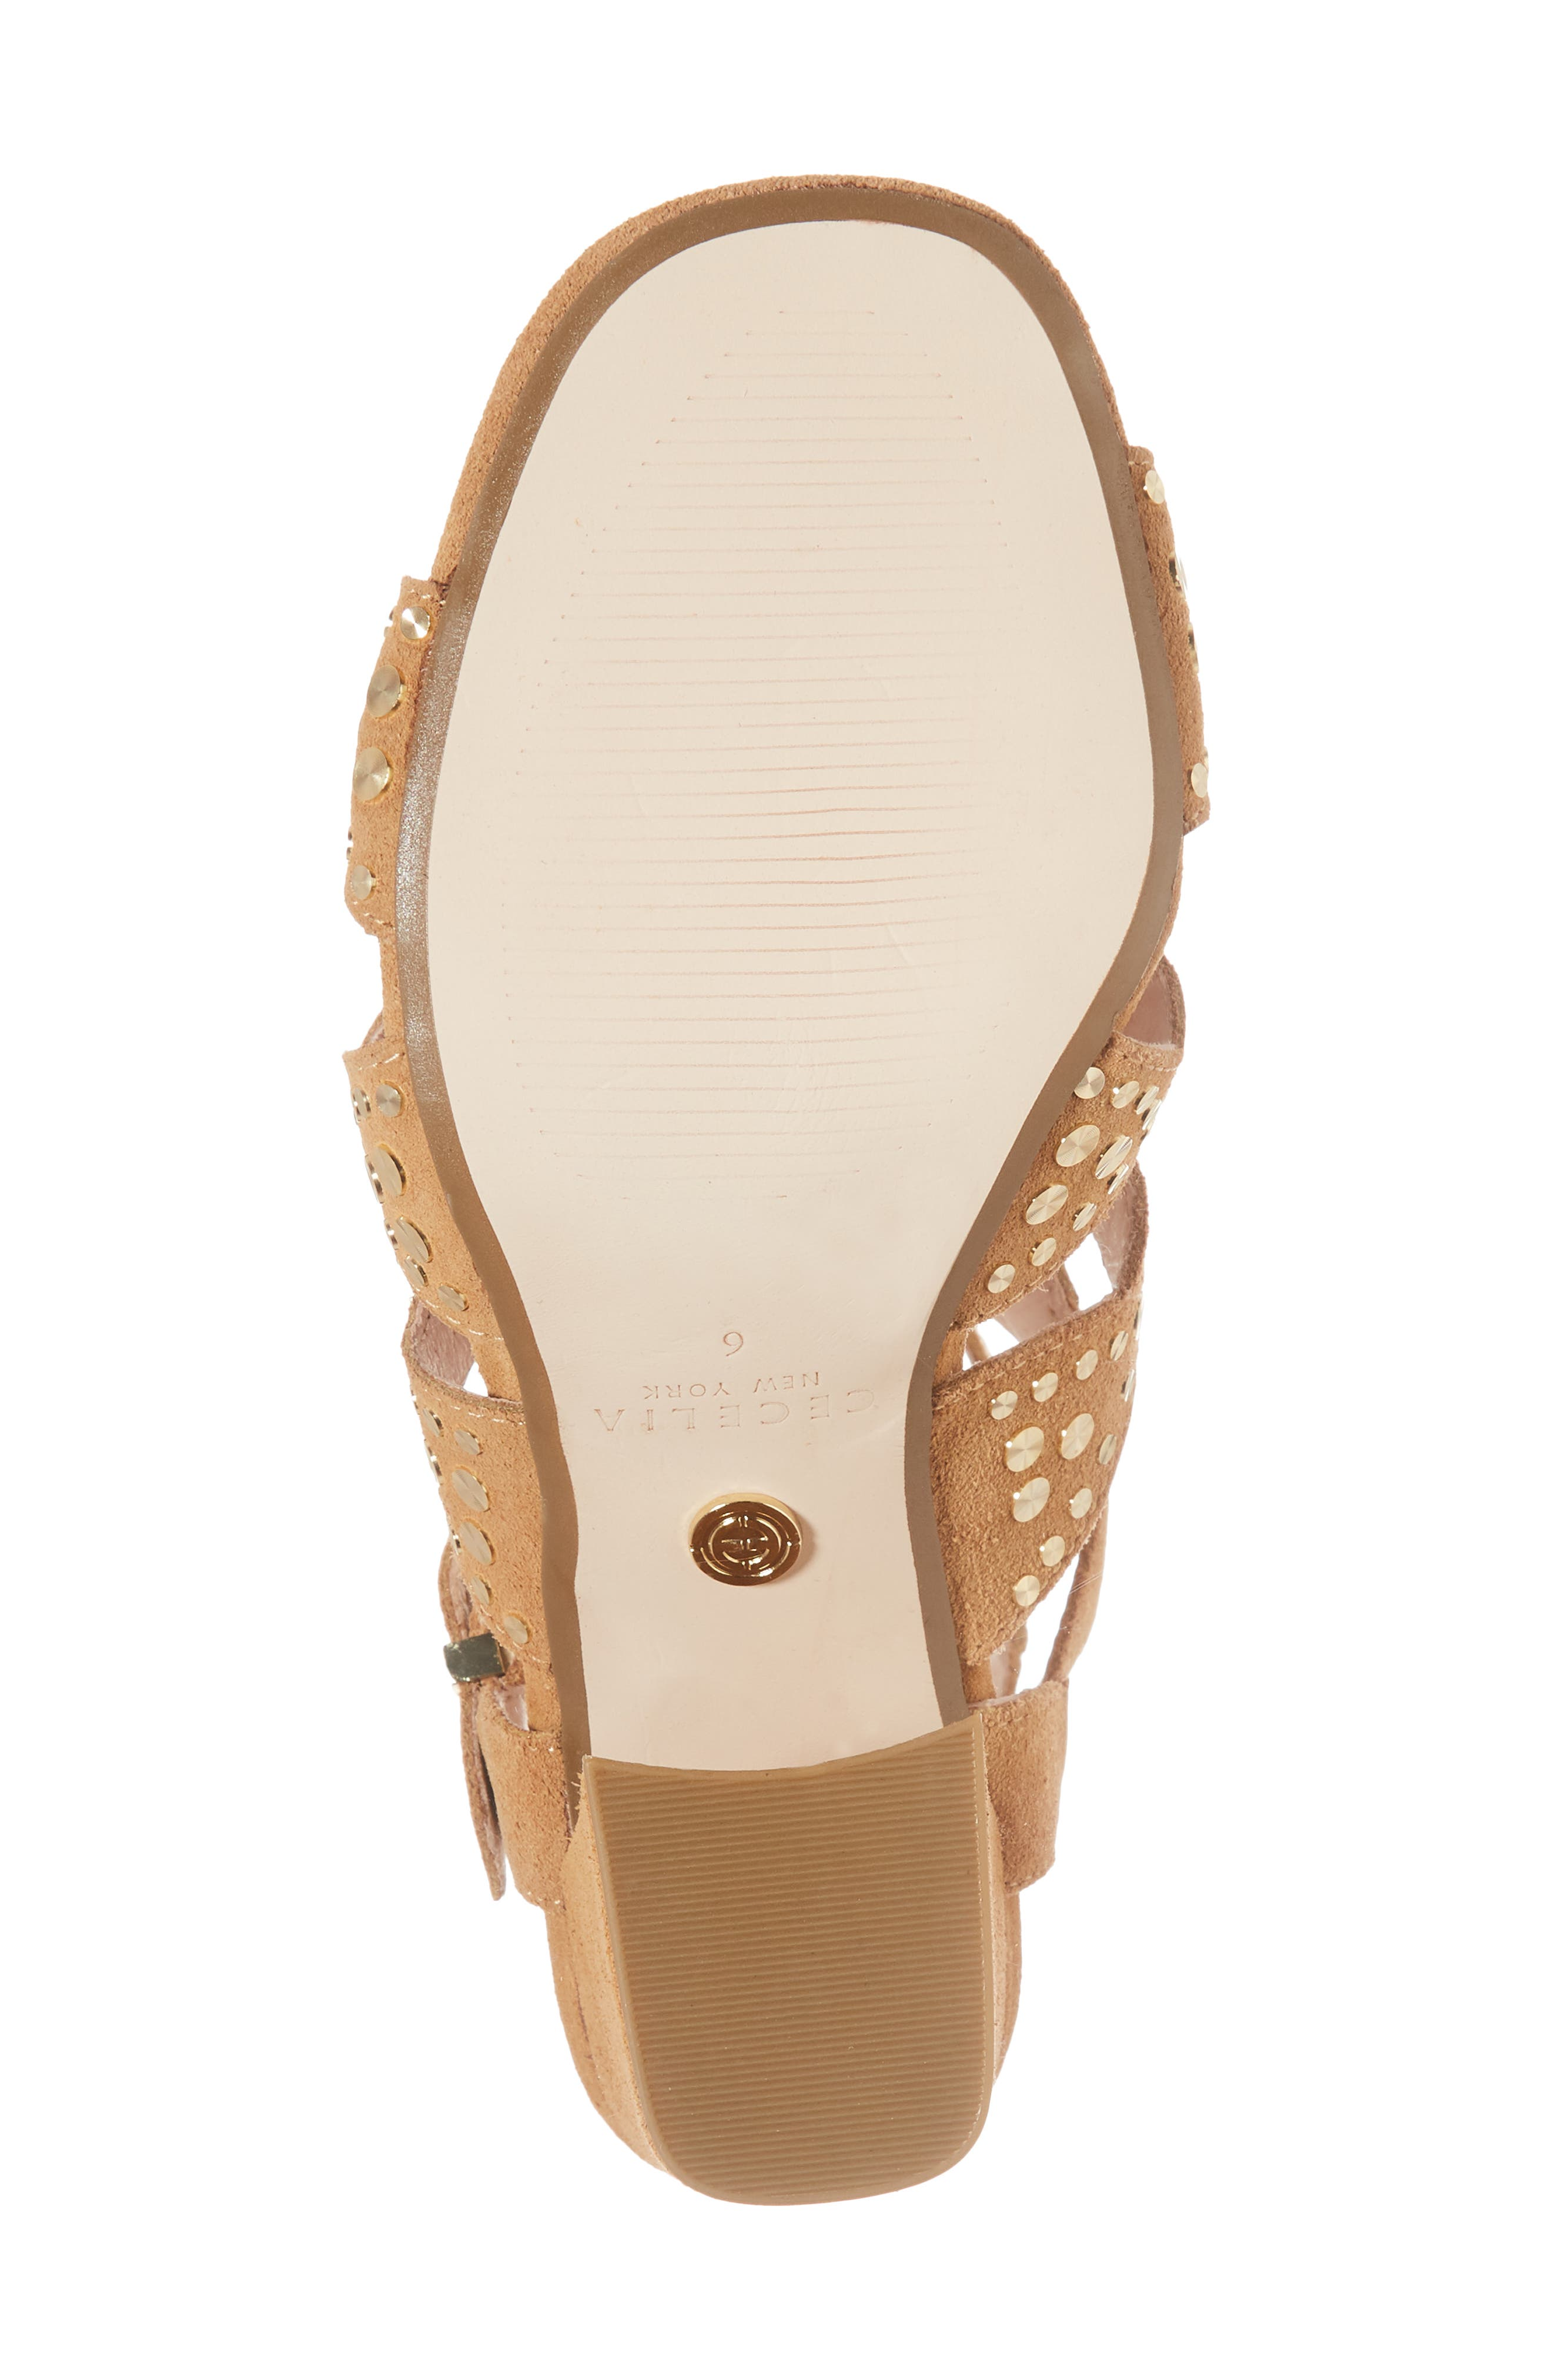 CECELIA NEW YORK,                             Cosmo Studded Sandal,                             Alternate thumbnail 6, color,                             200